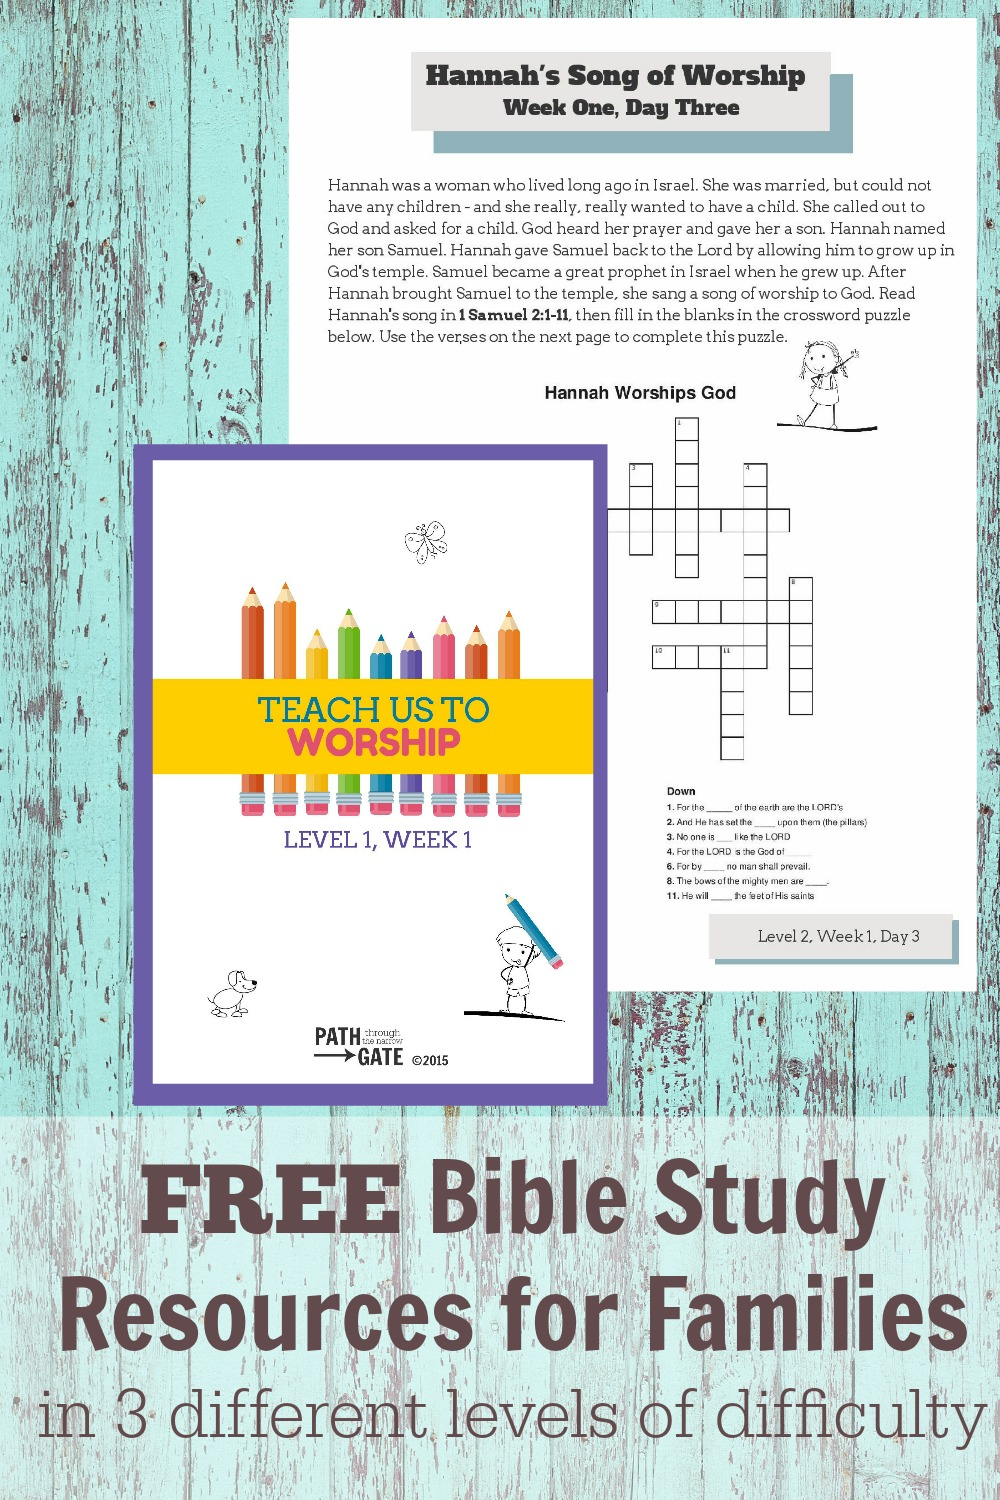 Teach Us to Worship is a family Bible Study designed to help busy families learn to worship God together through fun activity sheets and thoughtful questions.